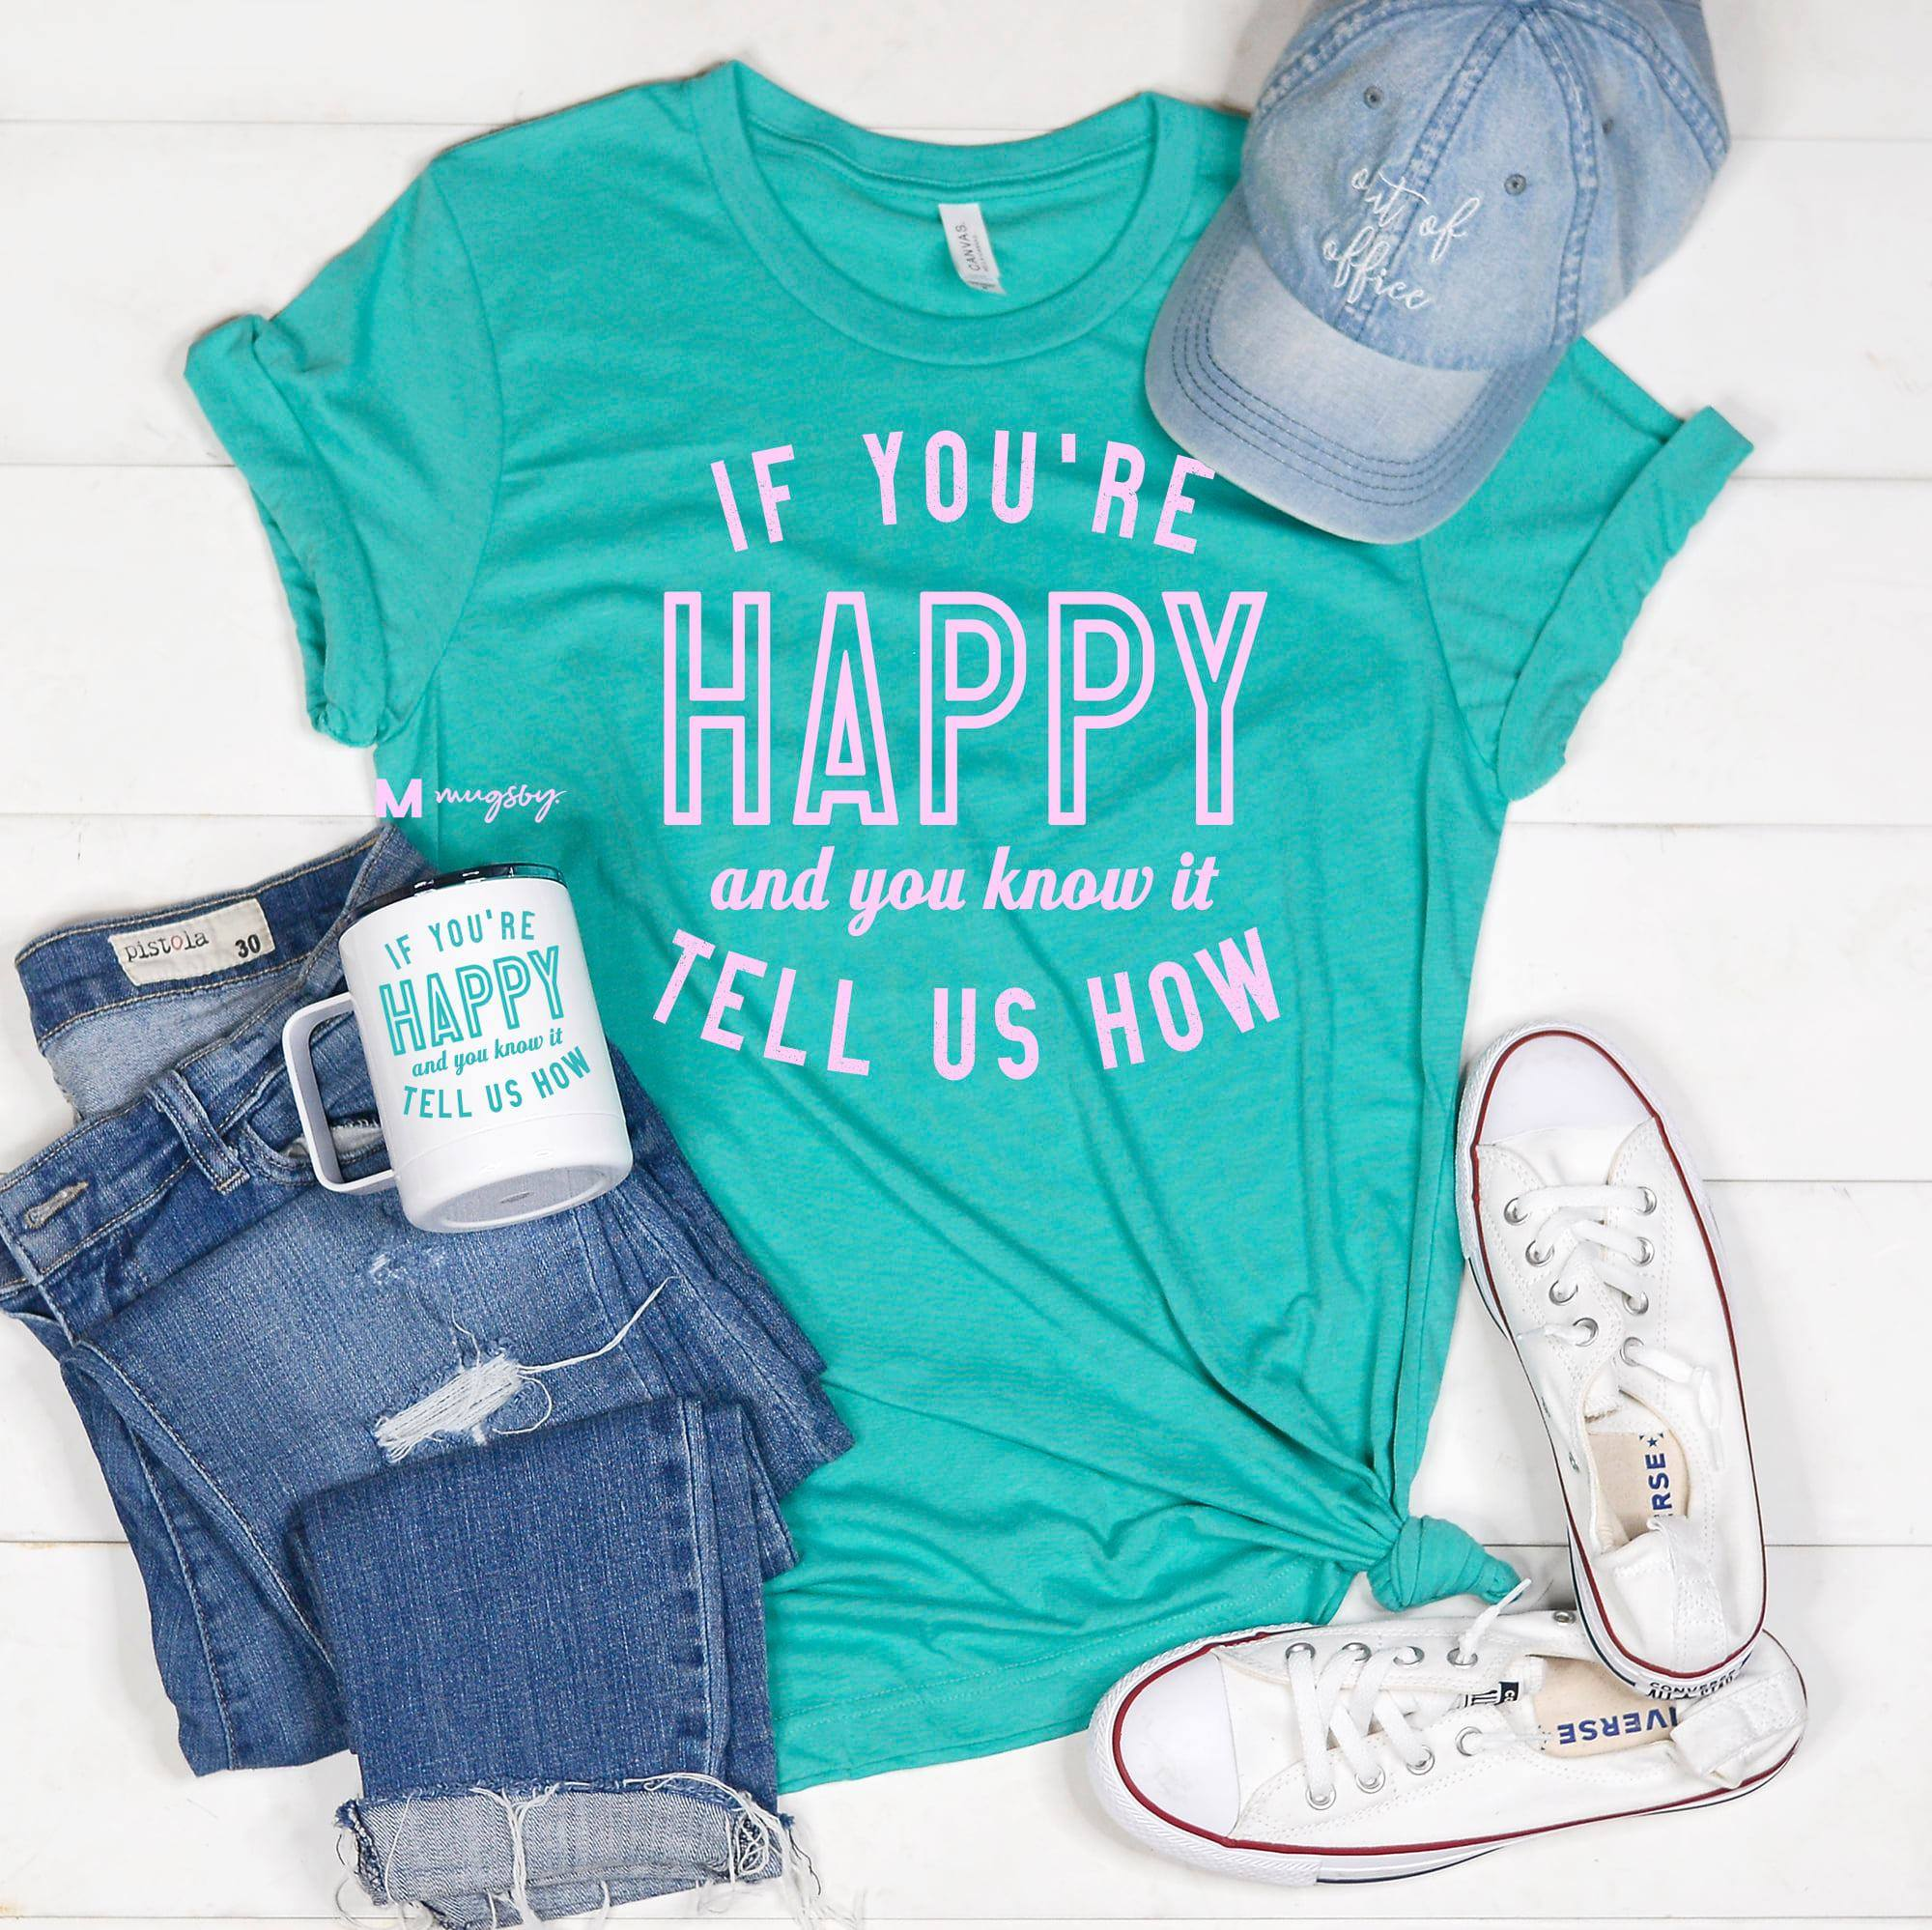 If You're Happy And you Know it, Tell us How Shirt (Sea Green)